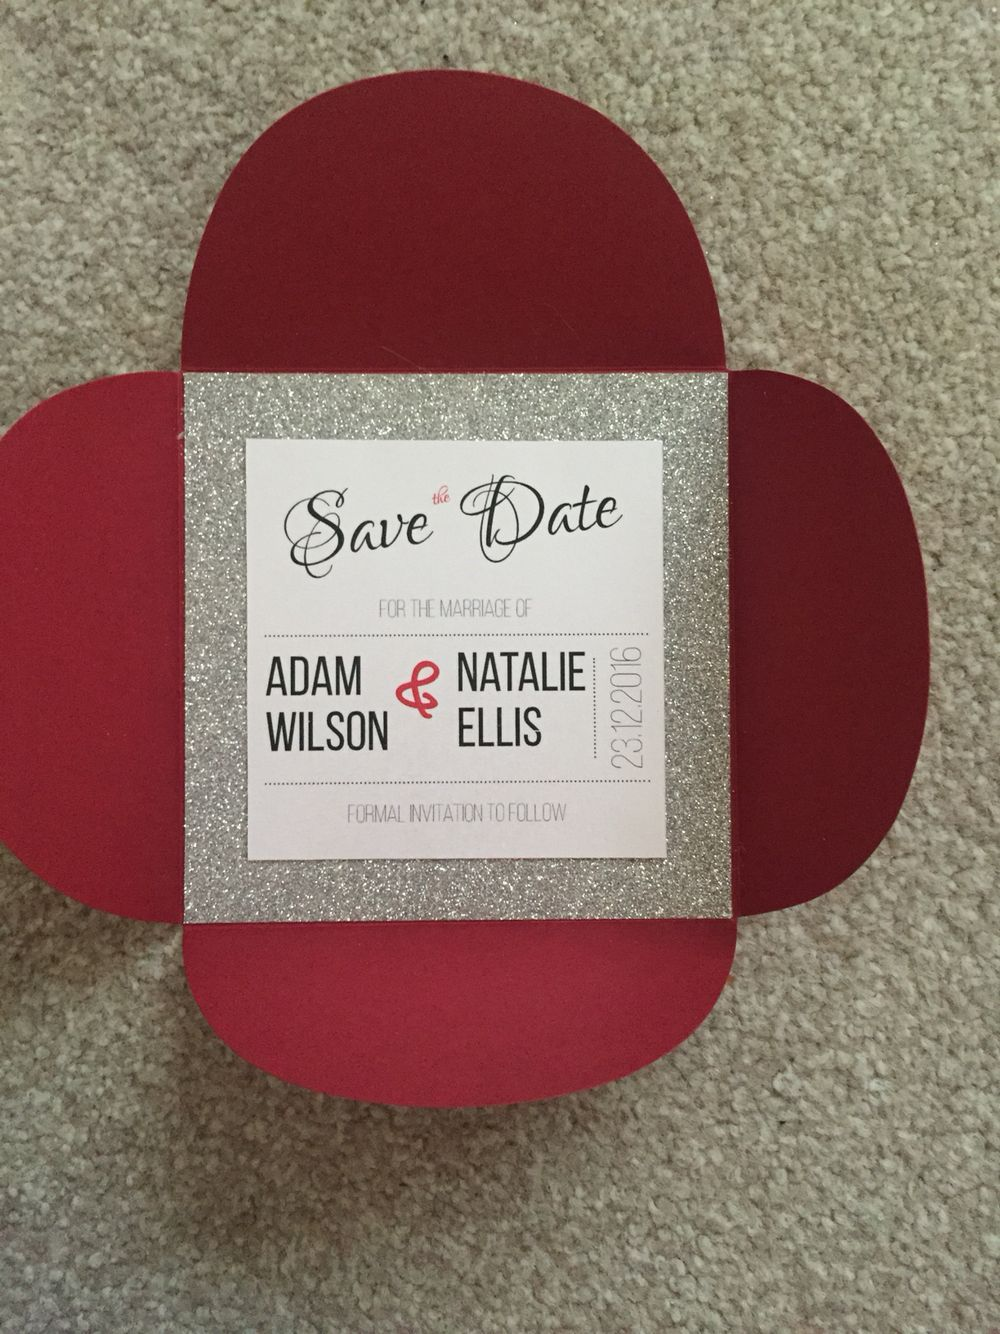 Save the dates! #christmas #glitter #silver #red #handmade | My ...